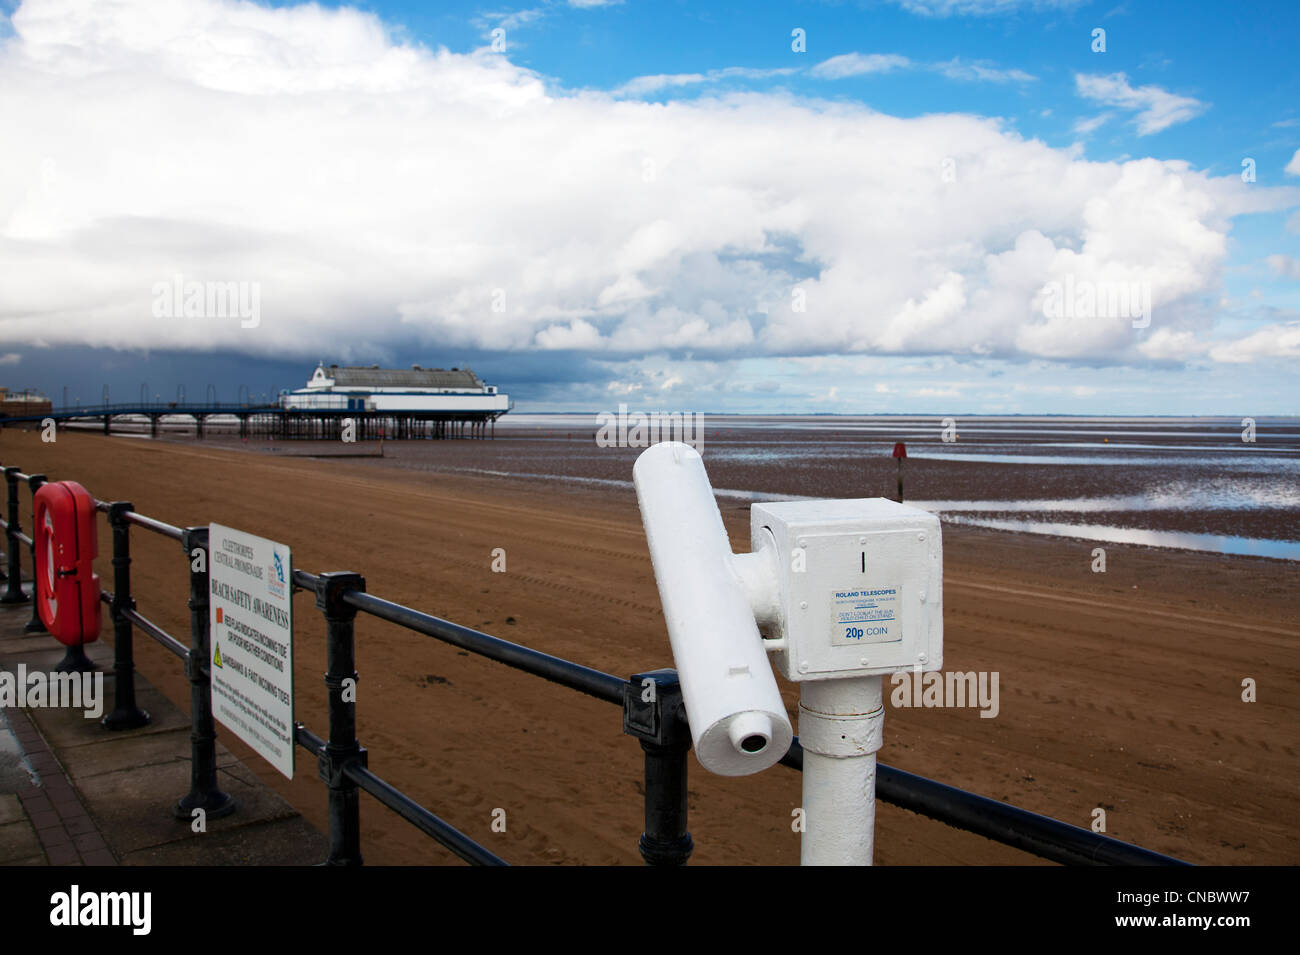 Cleethorpes, Lincolnshire, Pier a traditional victorian pier which is now a nightclub & restaurant viewing telescope - Stock Image